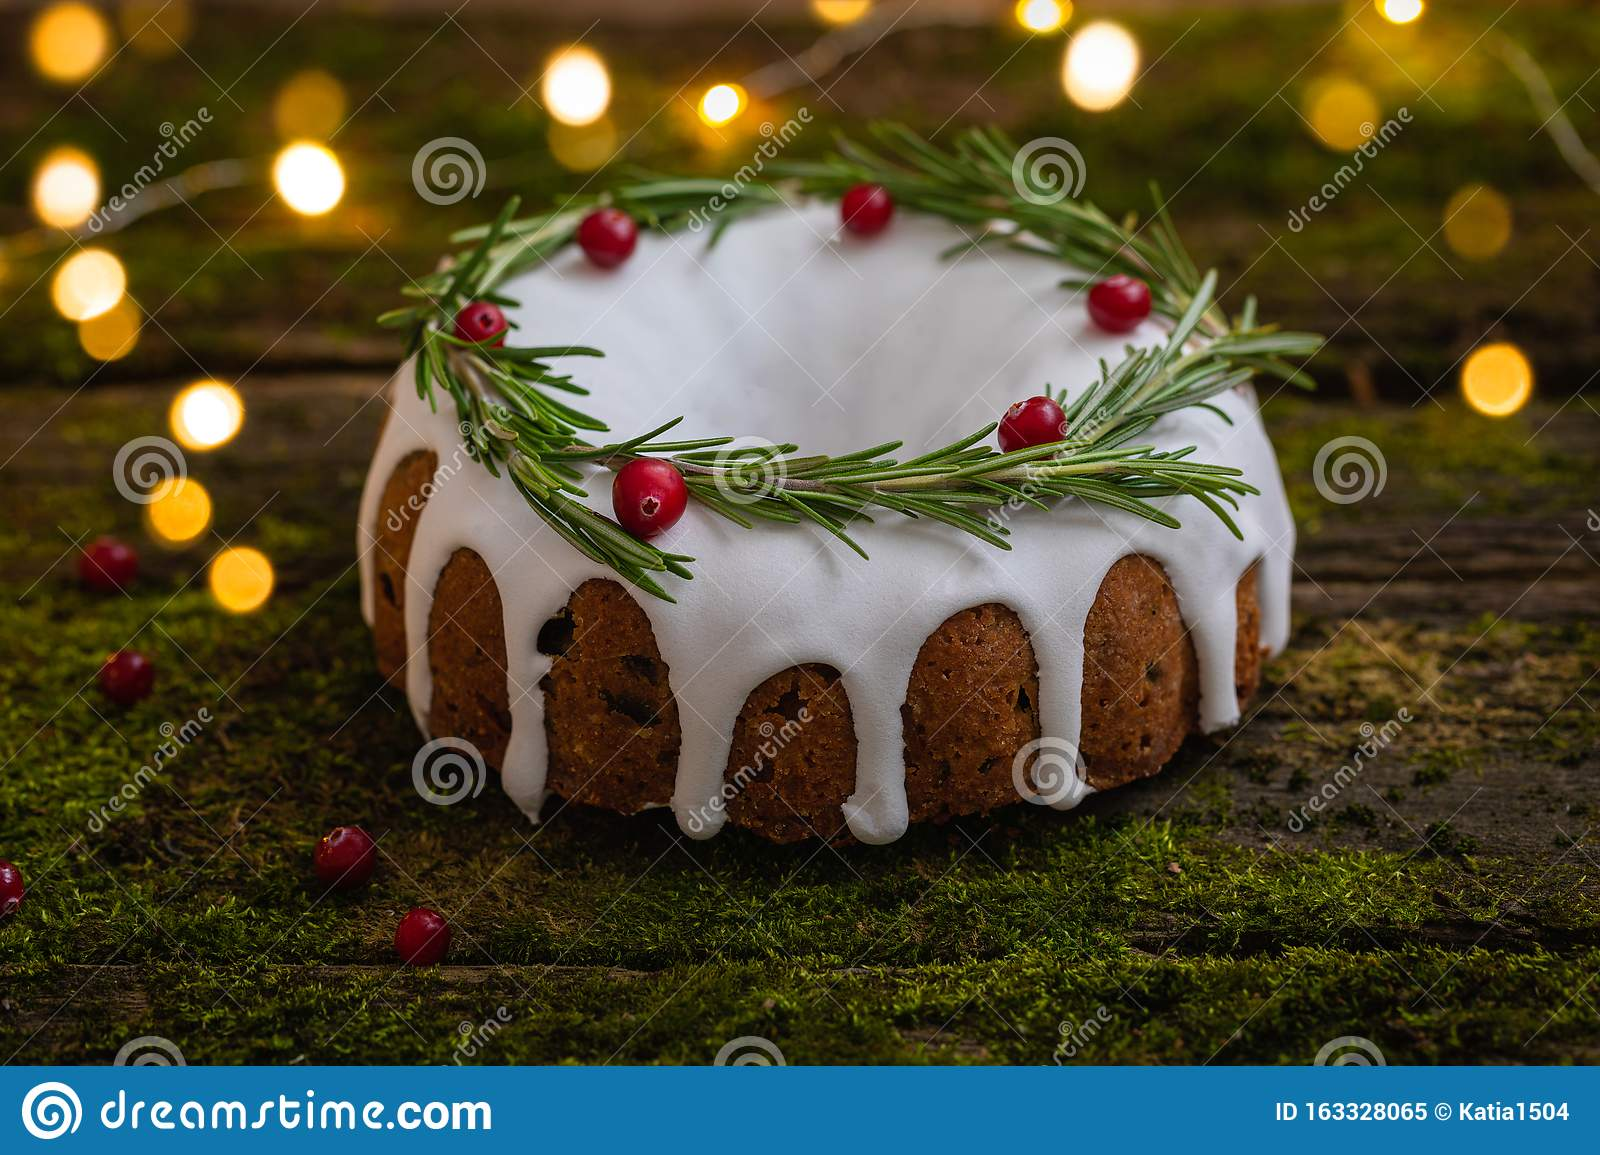 Traditional Homemade Christmas Fruit Cake On The Natural Wooden